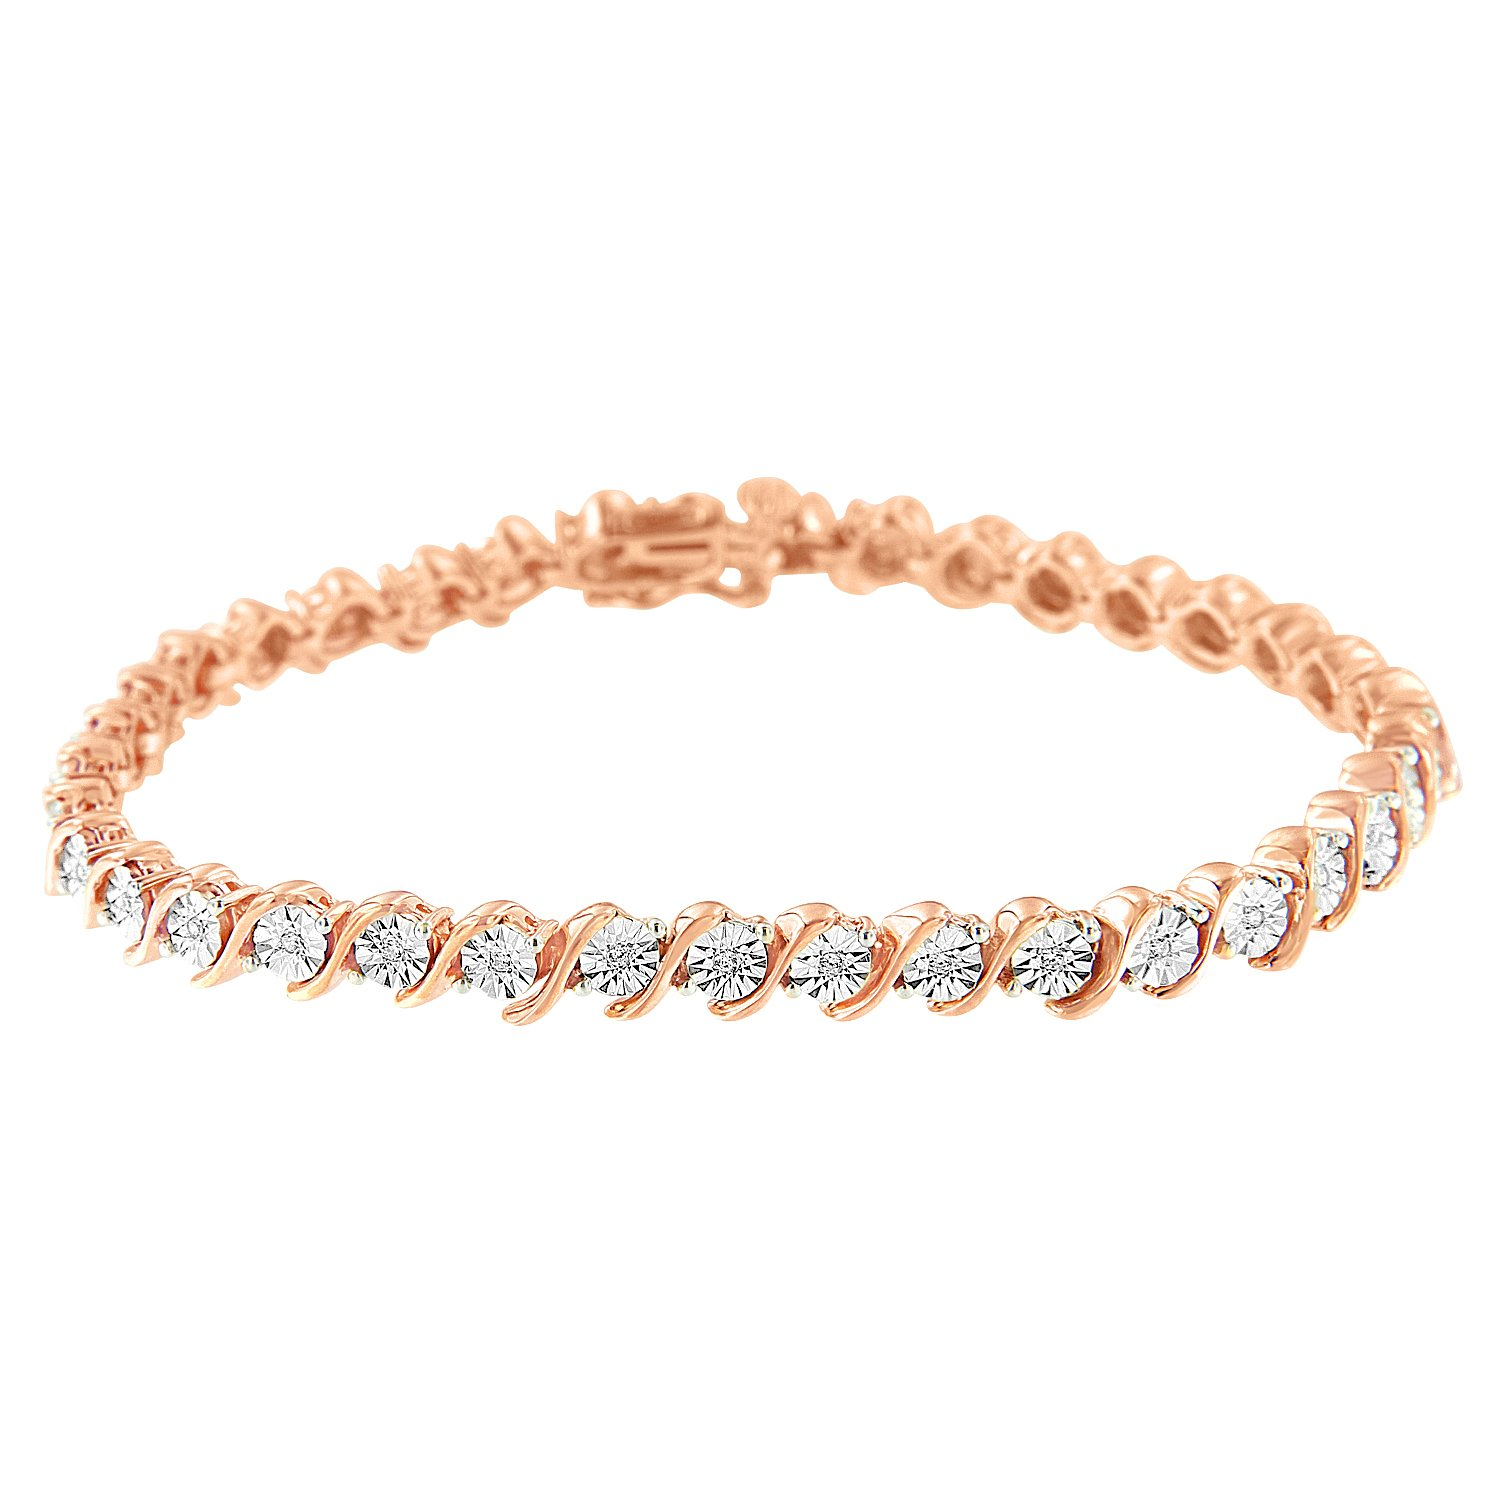 2 Micron 14k Rose Plated Sterling Silver Diamond Tennis Bracelet (0.25 cttw, H-I Color, I2-I3 Clarity)